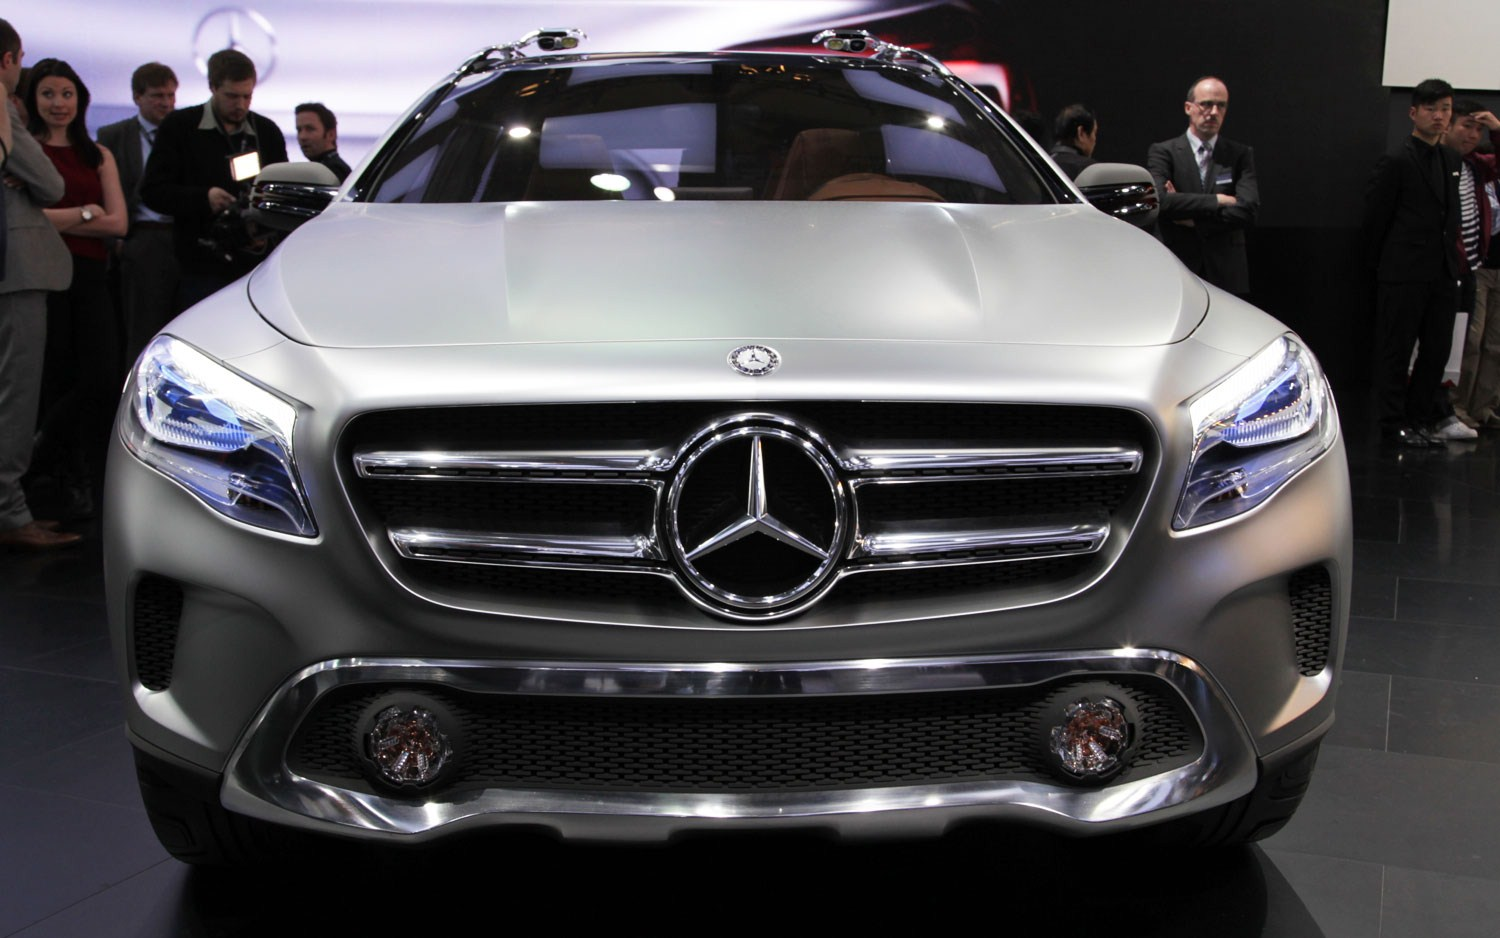 2015 mercedes benz gla class hd images 2018 hd cars for Mercedes benz 2015 gla